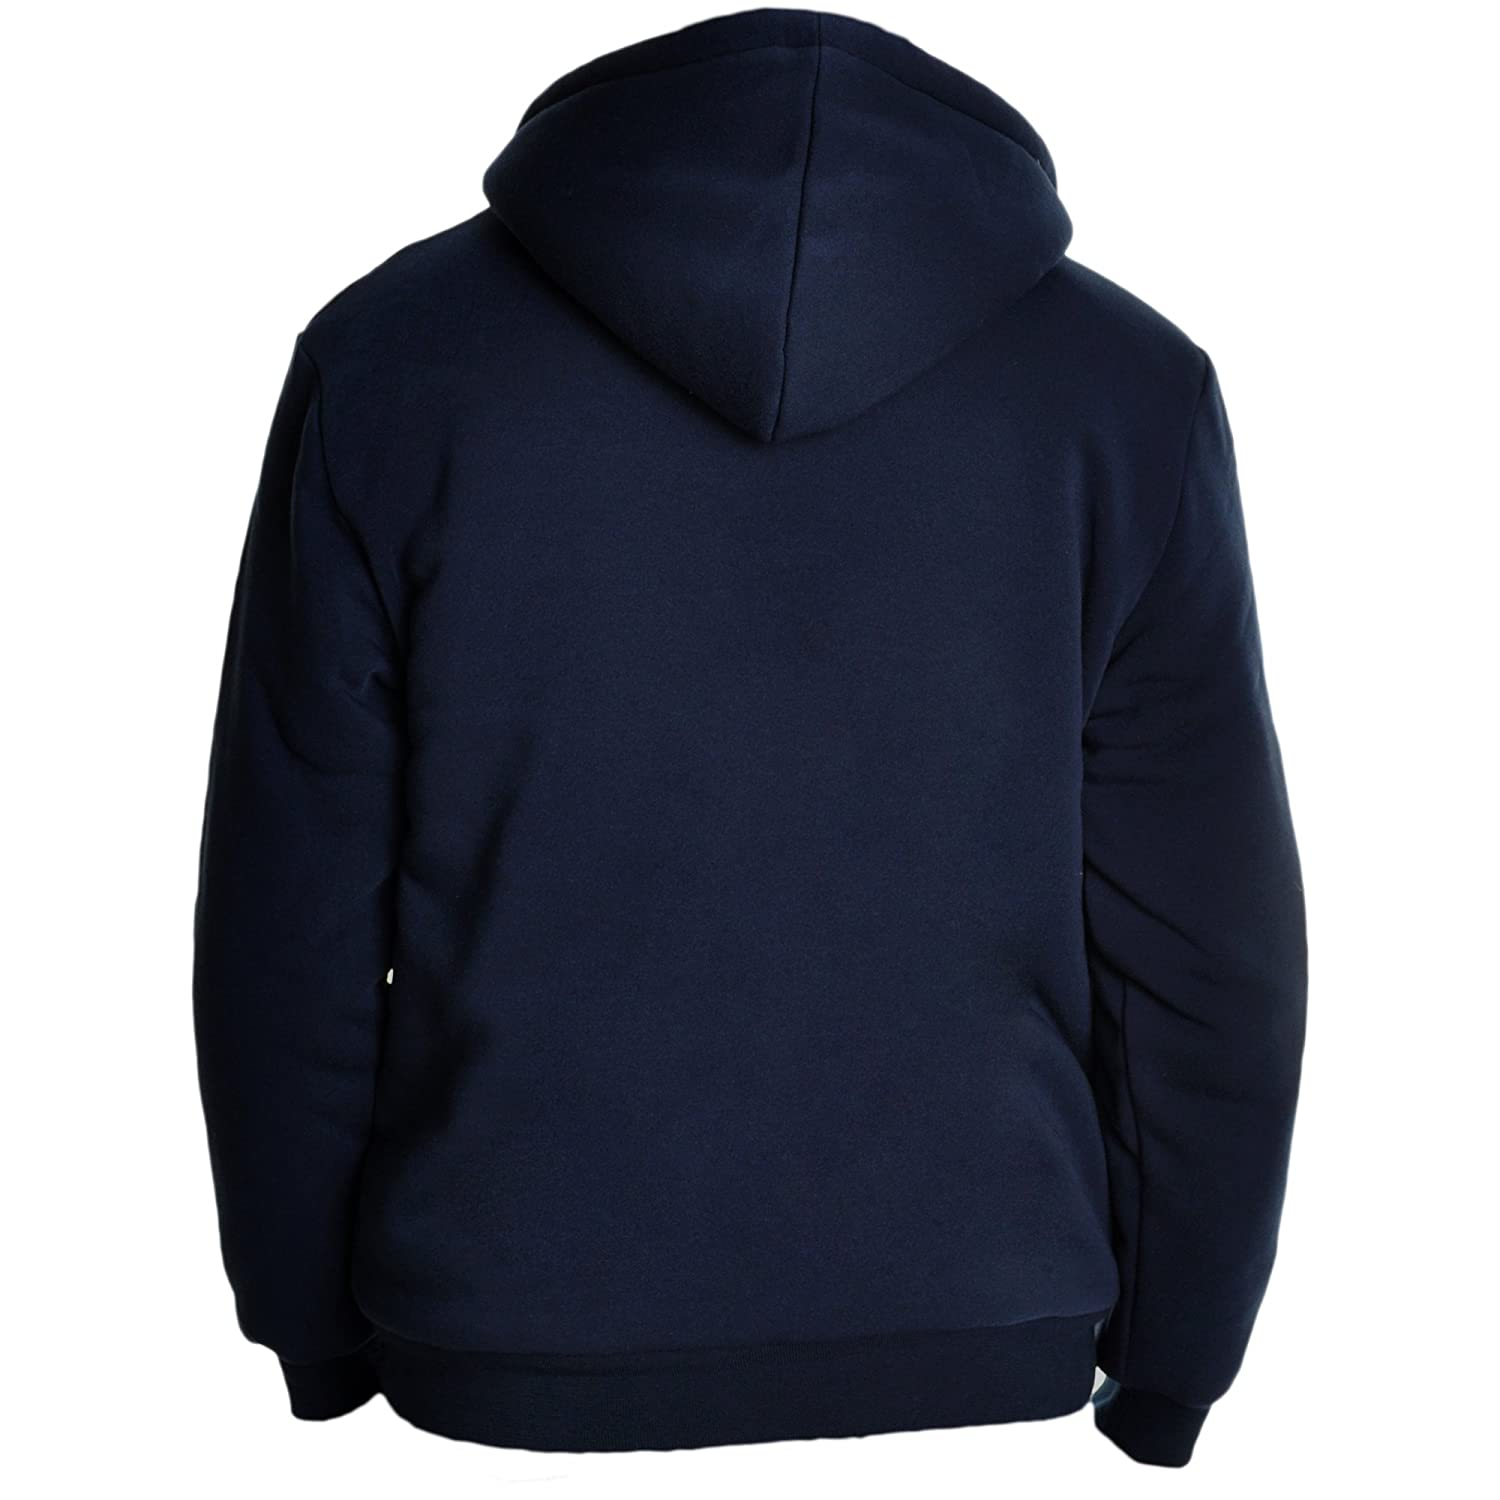 Espada Men's Full-Zipper Hoodie Jacket